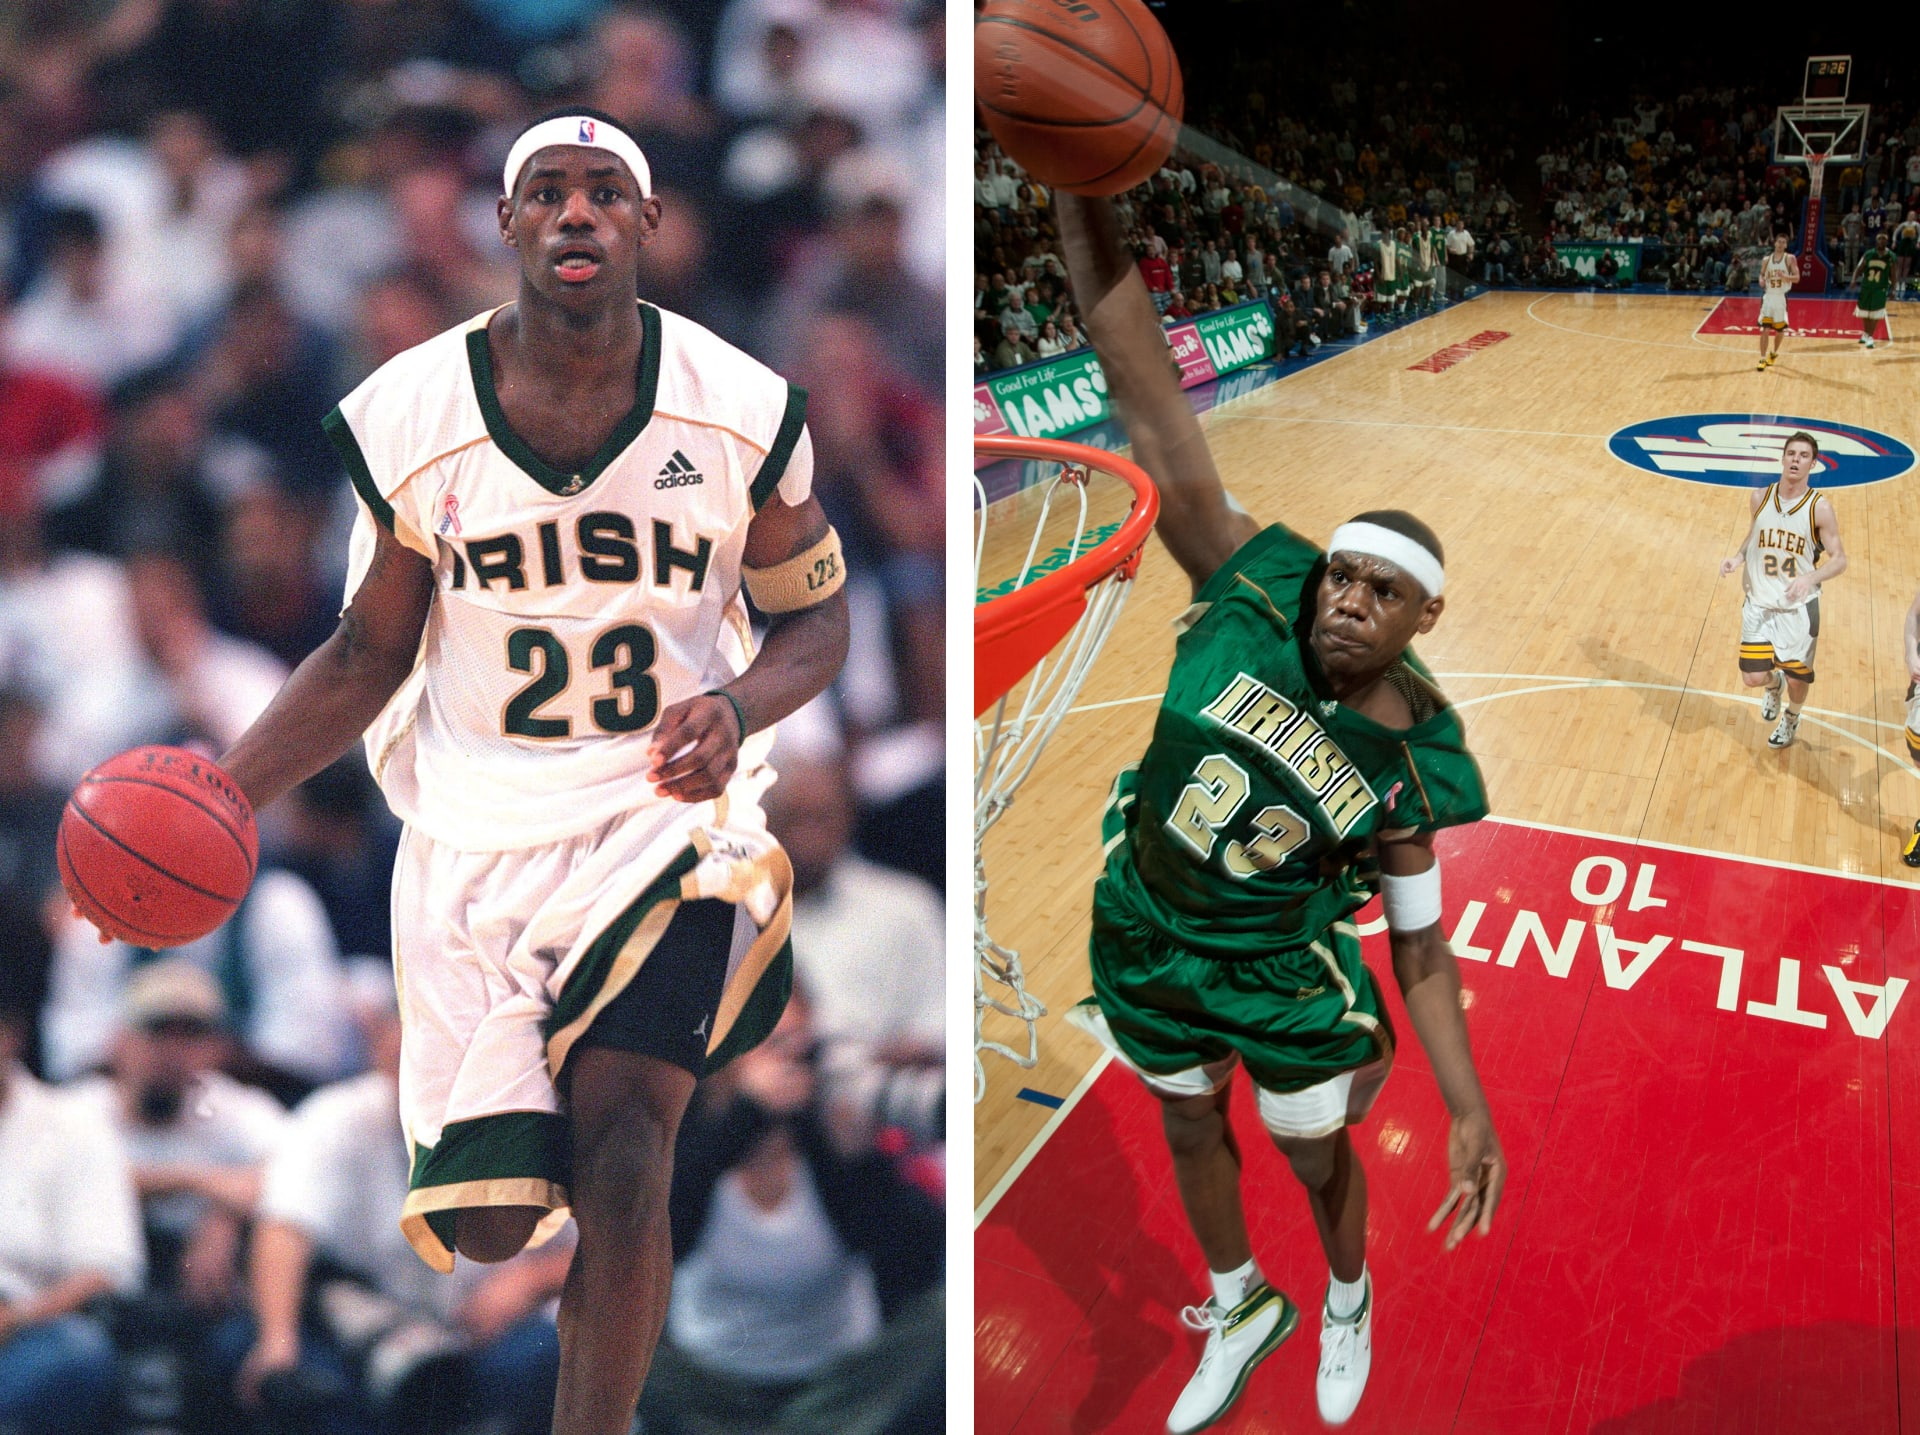 69d20d46cbc Brian Windhorst has been covering LeBron James since the superstar s high  school days   Left Image via USA Today Sports   Kirby Lee   Right Image via  USA ...